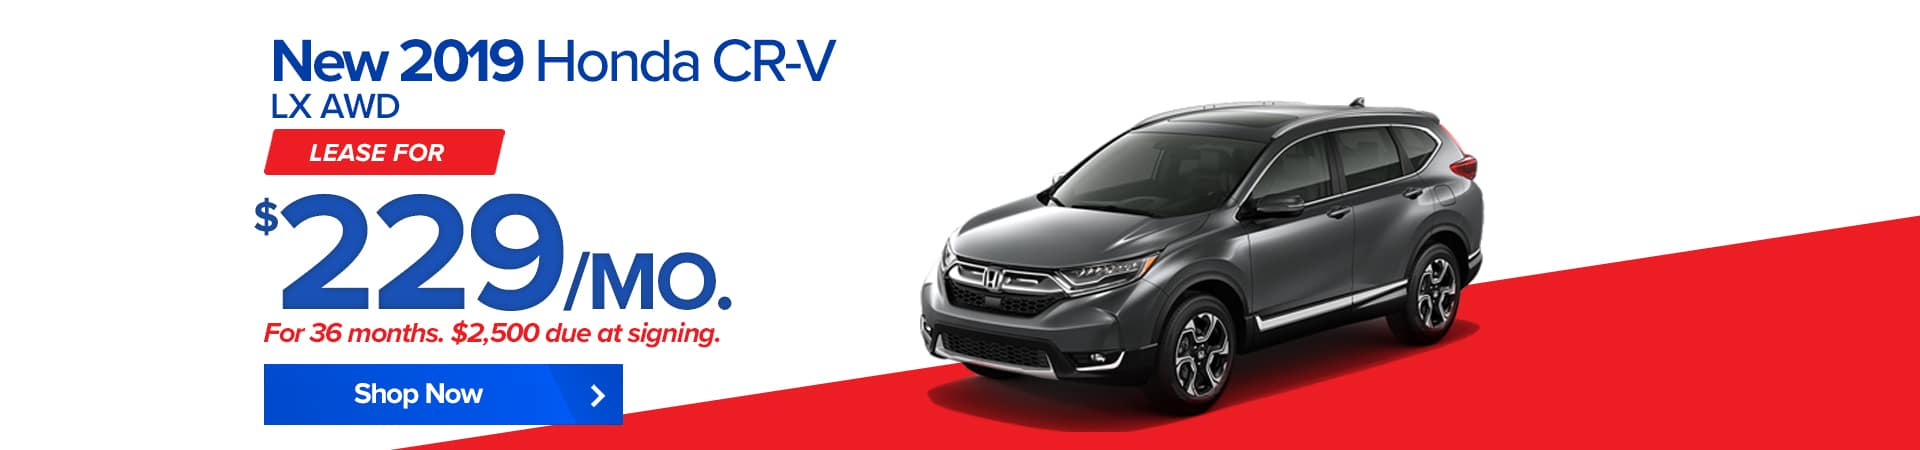 Majestic Honda New And Used Dealer Serving Providence 93 Del Sol Wiring Diagram Sales Tax Title Registration Fees Additional All Incentives To Cannot Be Combined With Other Offers Available Well Qualified Buyers